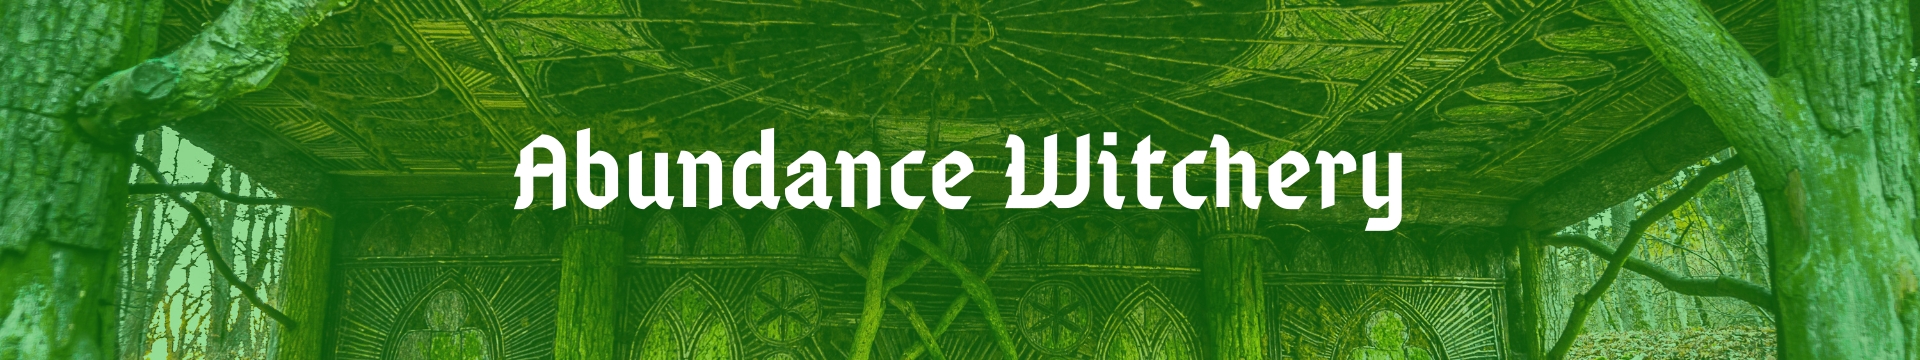 Abundance Witchery